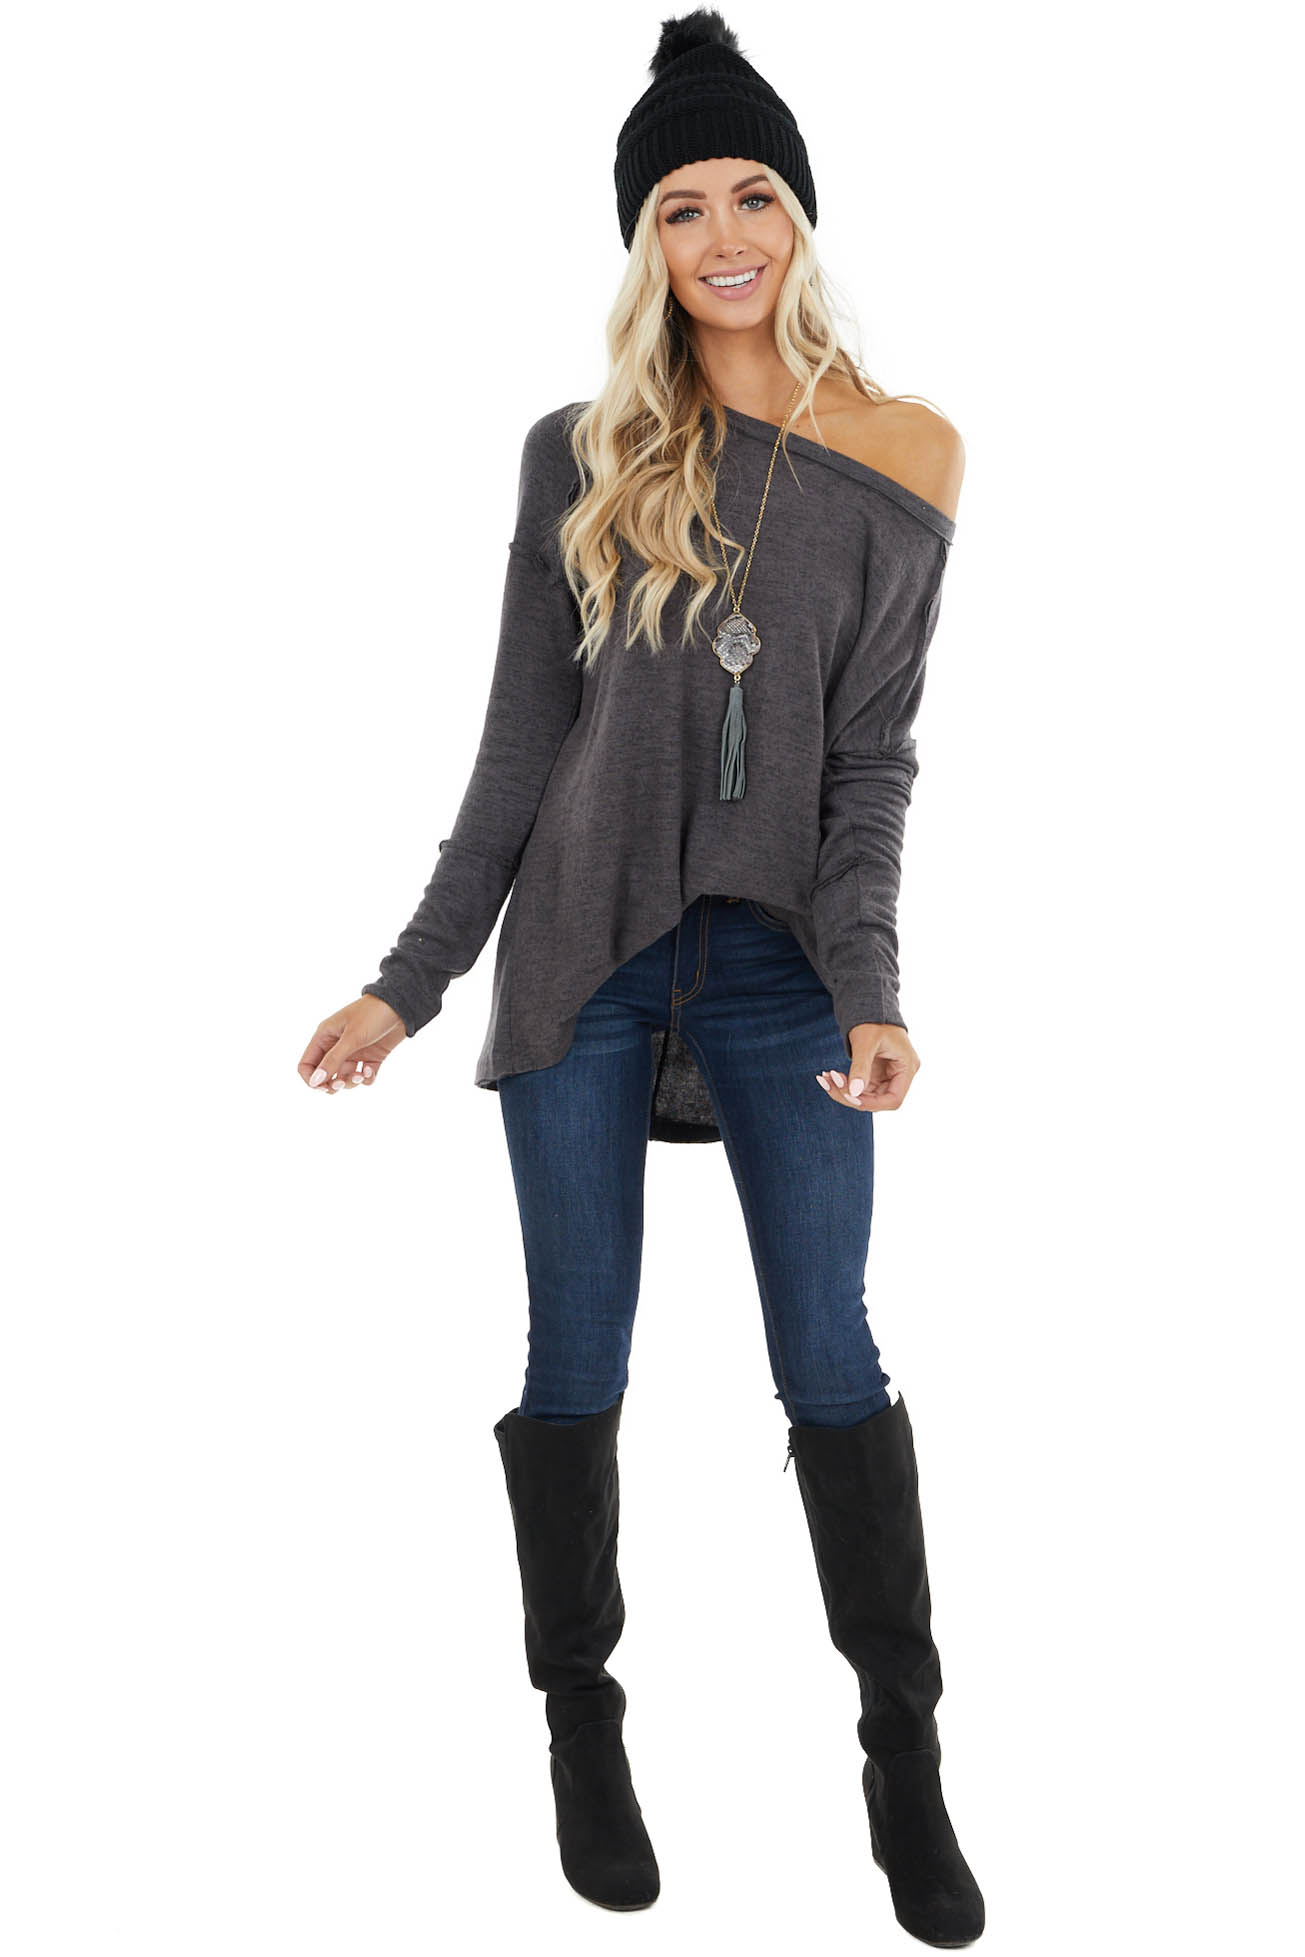 Charcoal Fuzzy Stretchy Knit Top with Raw Edge Details